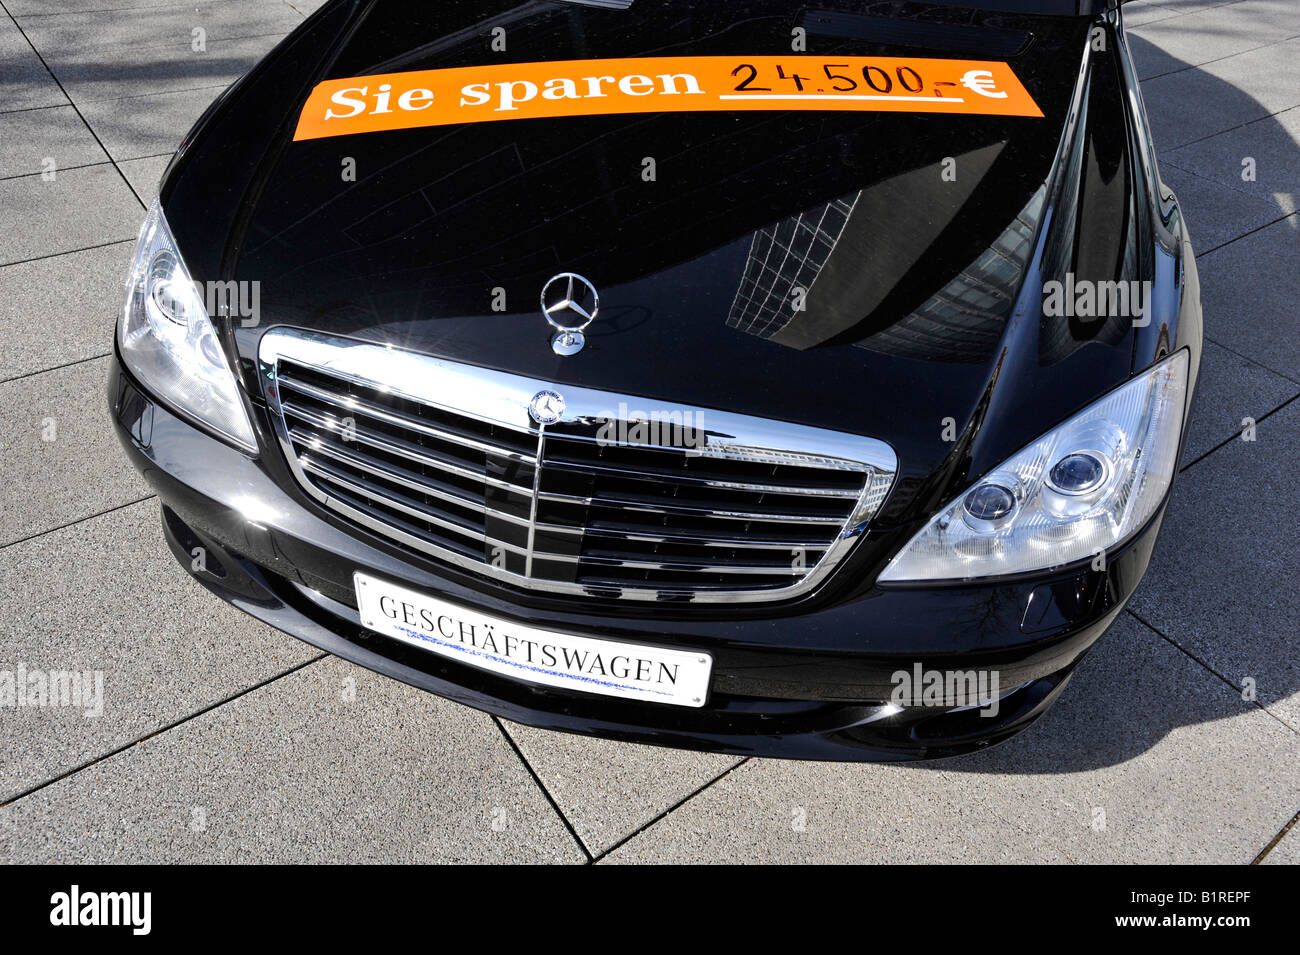 Daimler Mercedes Benz company car, sign reading Sie sparen 24.500Ae, you save 24, 500 Euros, Munich, Bavaria, Germany, - Stock Image